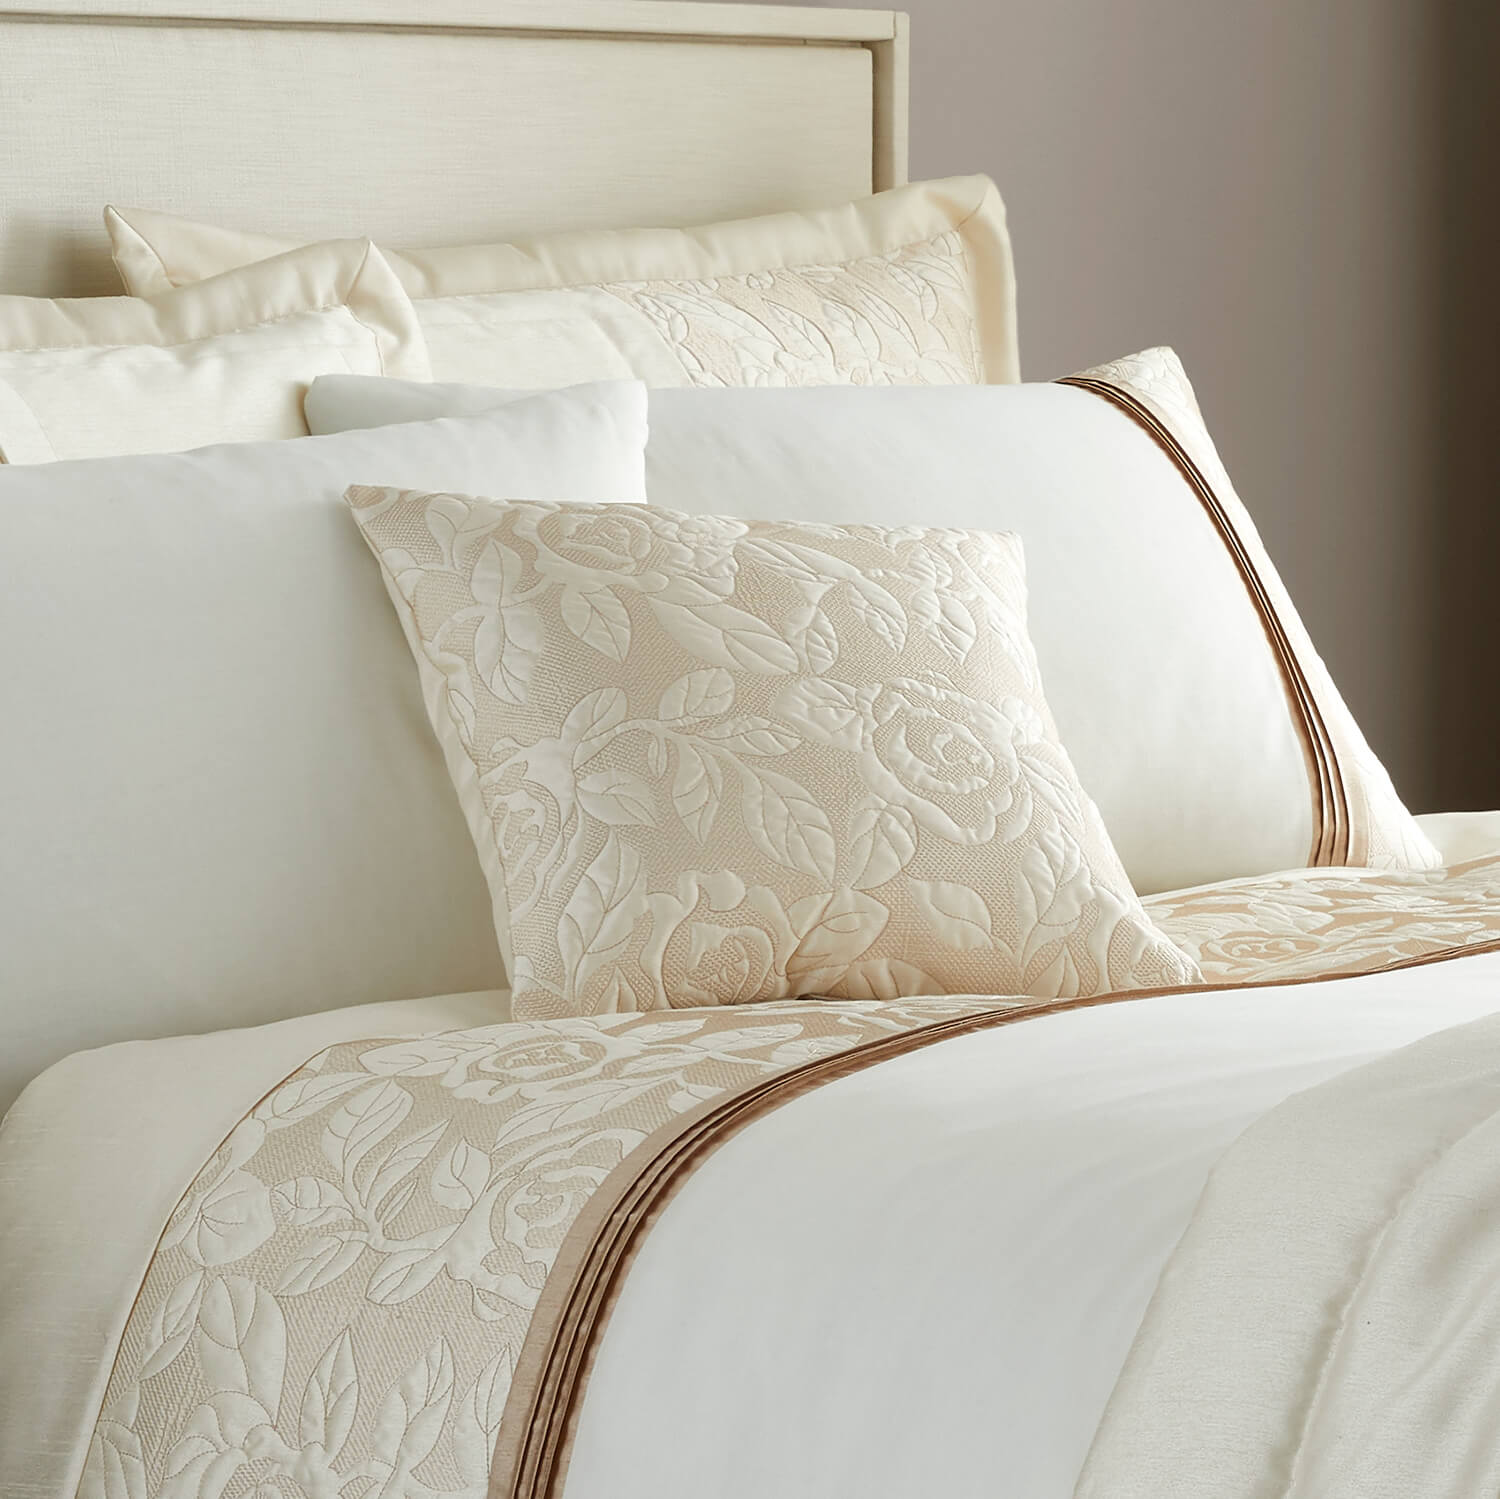 Quilted Rose Cream Gold Cushion 45x45cm Home Store More